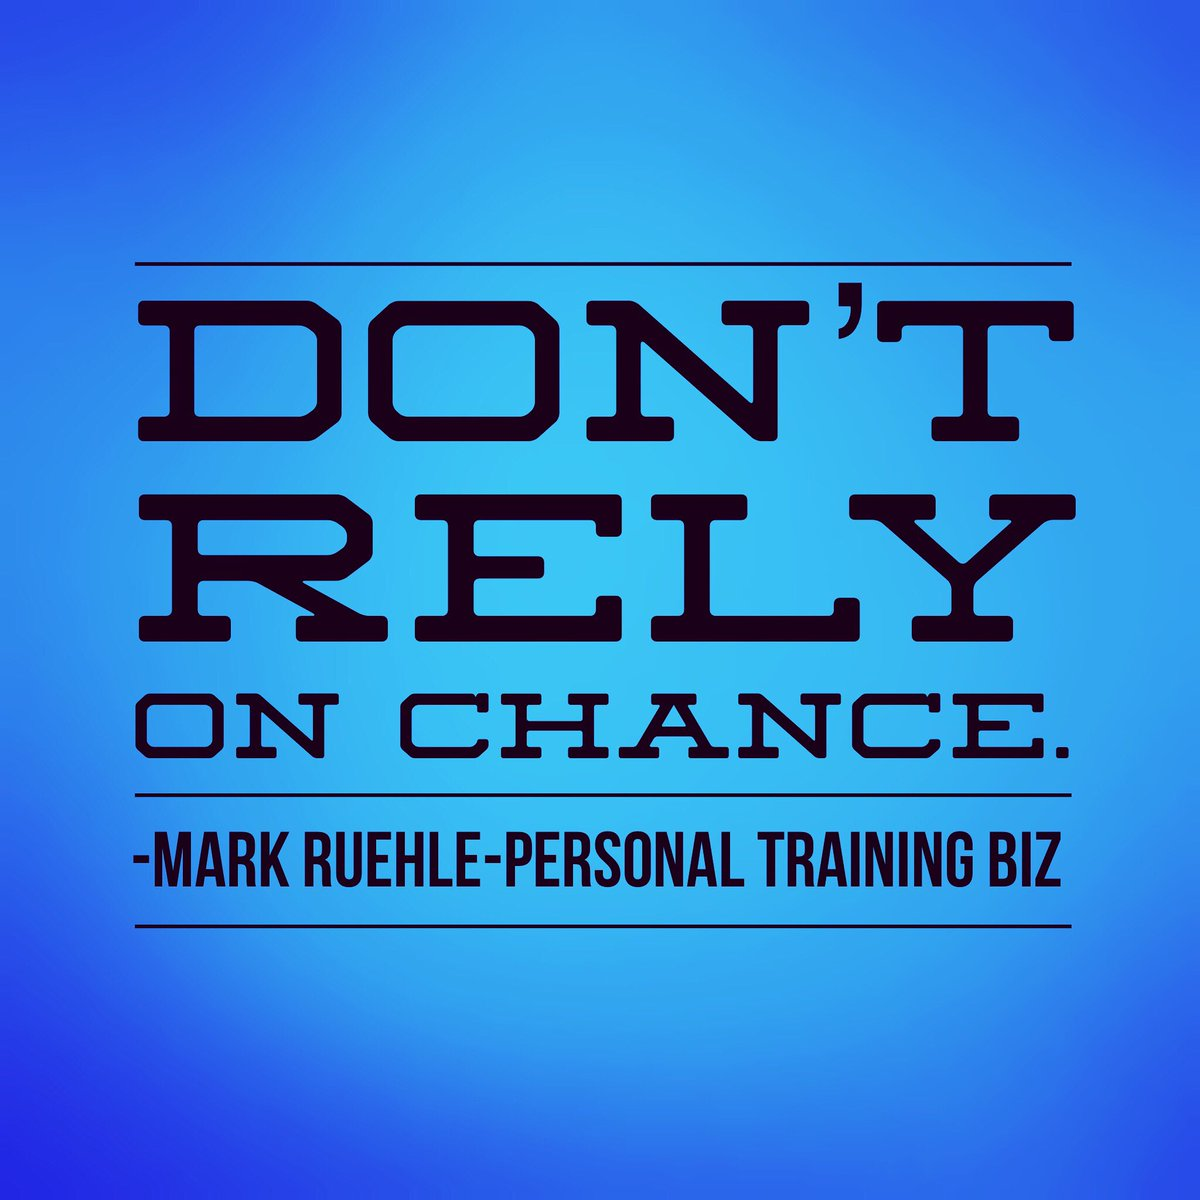 Why r U waiting around for people to find out about YOUR #personaltraining #service ? #Market it. Tell people. Initiate YOUR #success . #personaltrainer #personaltraining #pt #cpt #fitfam #fitspo #fitness #InternetMarketing #networkmarketing #networking #OnlineMarketing #garyvee